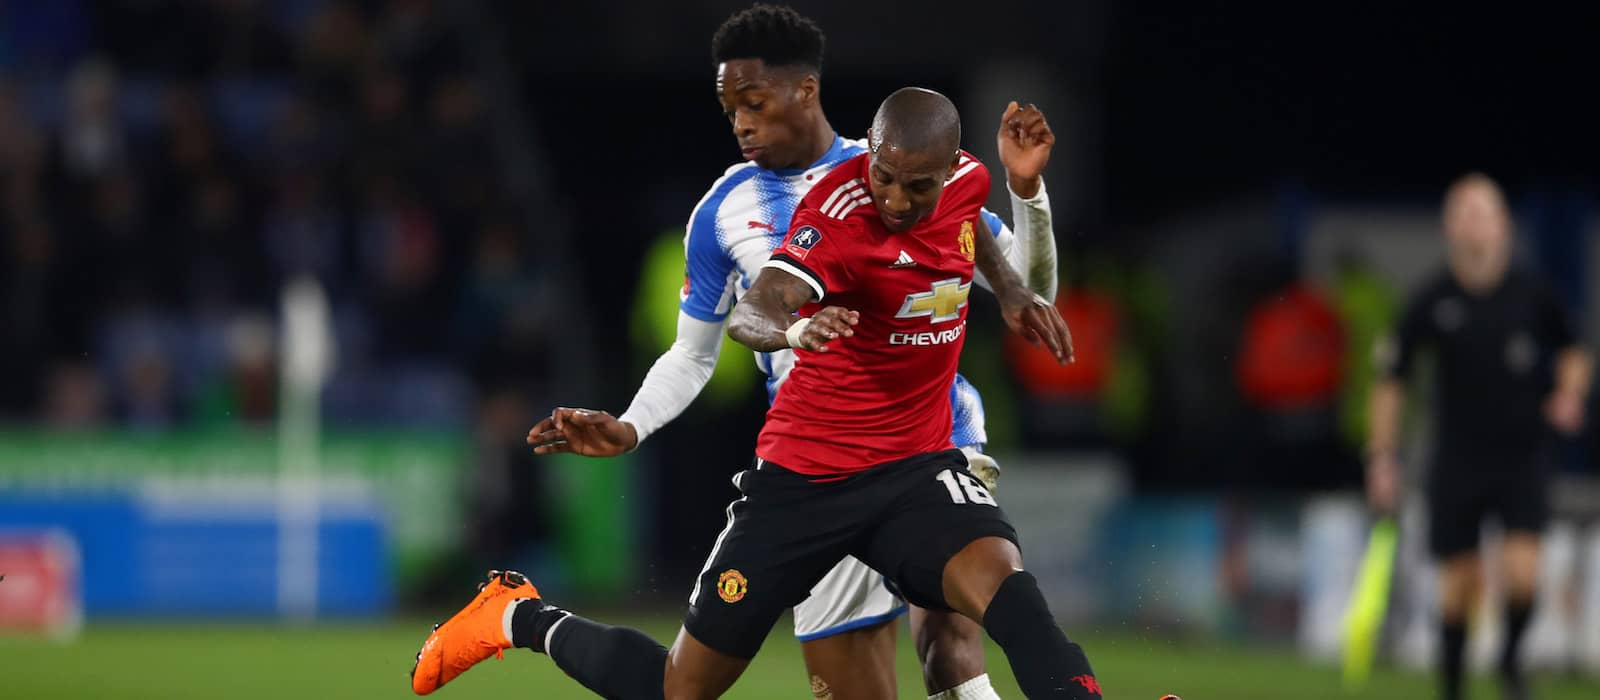 Manchester United medical staff to assess Ashley Young following knee injury against Italy